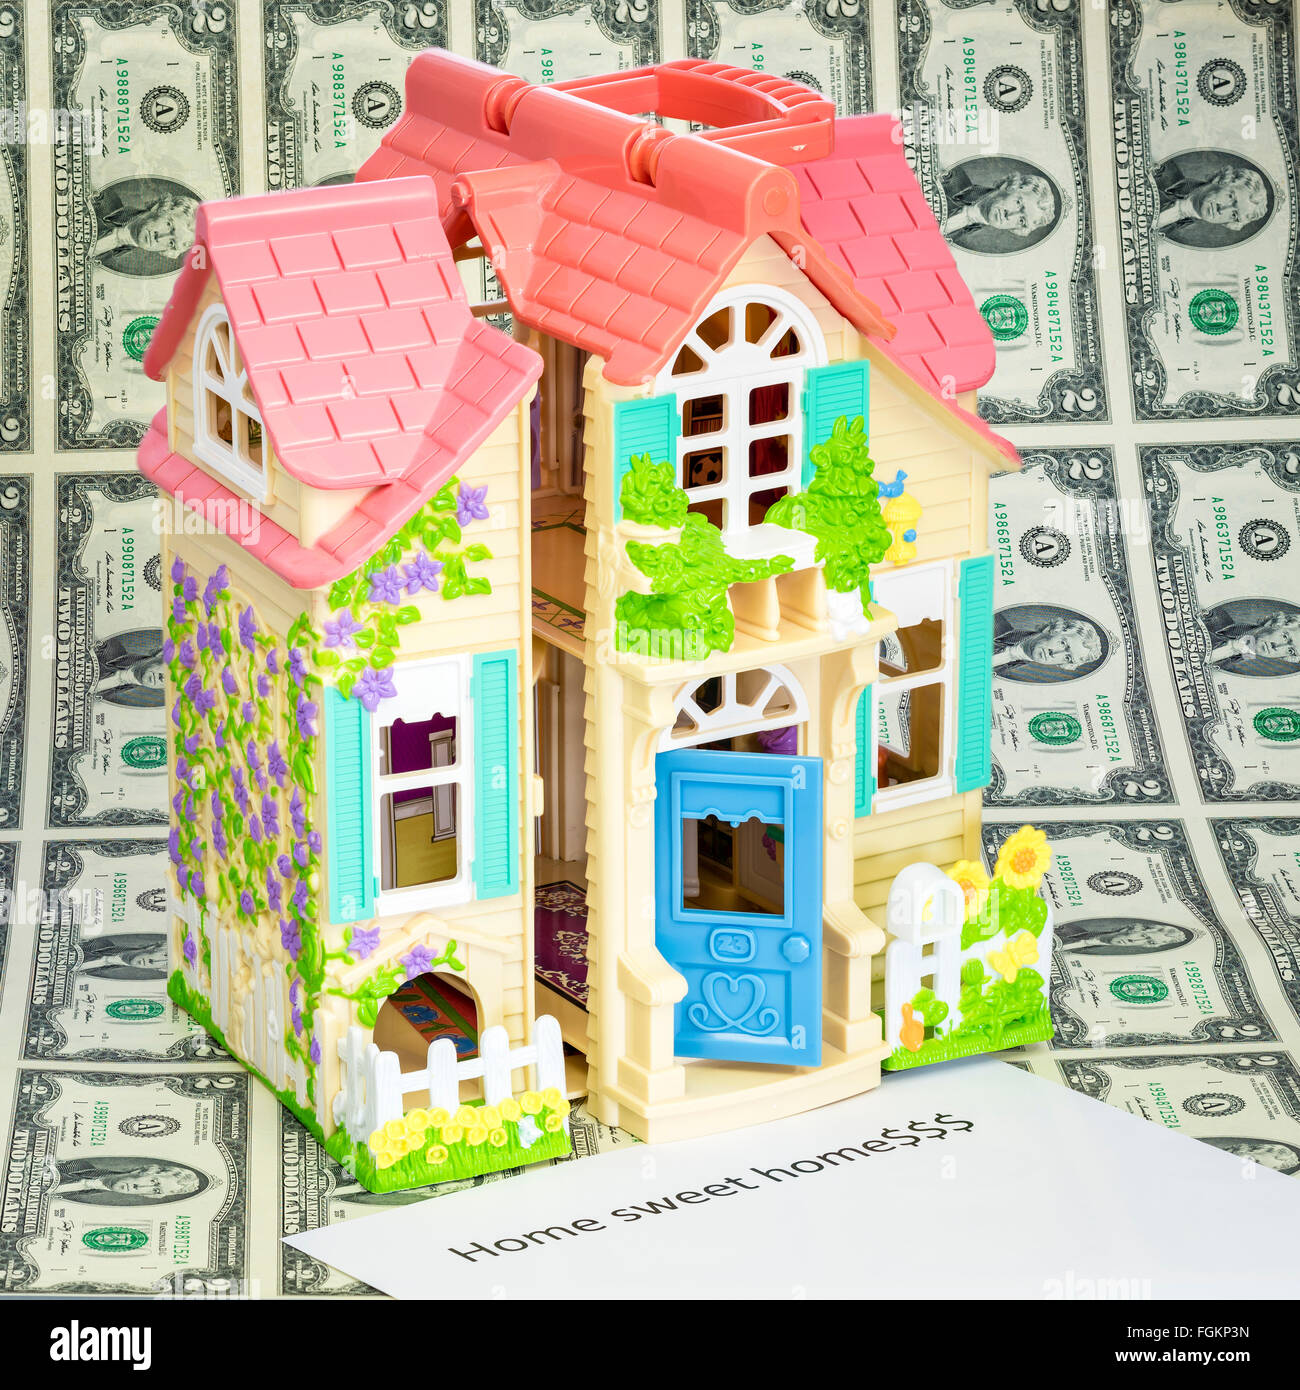 Cute little doll house on money with Home Sweet Home sign - Stock Image